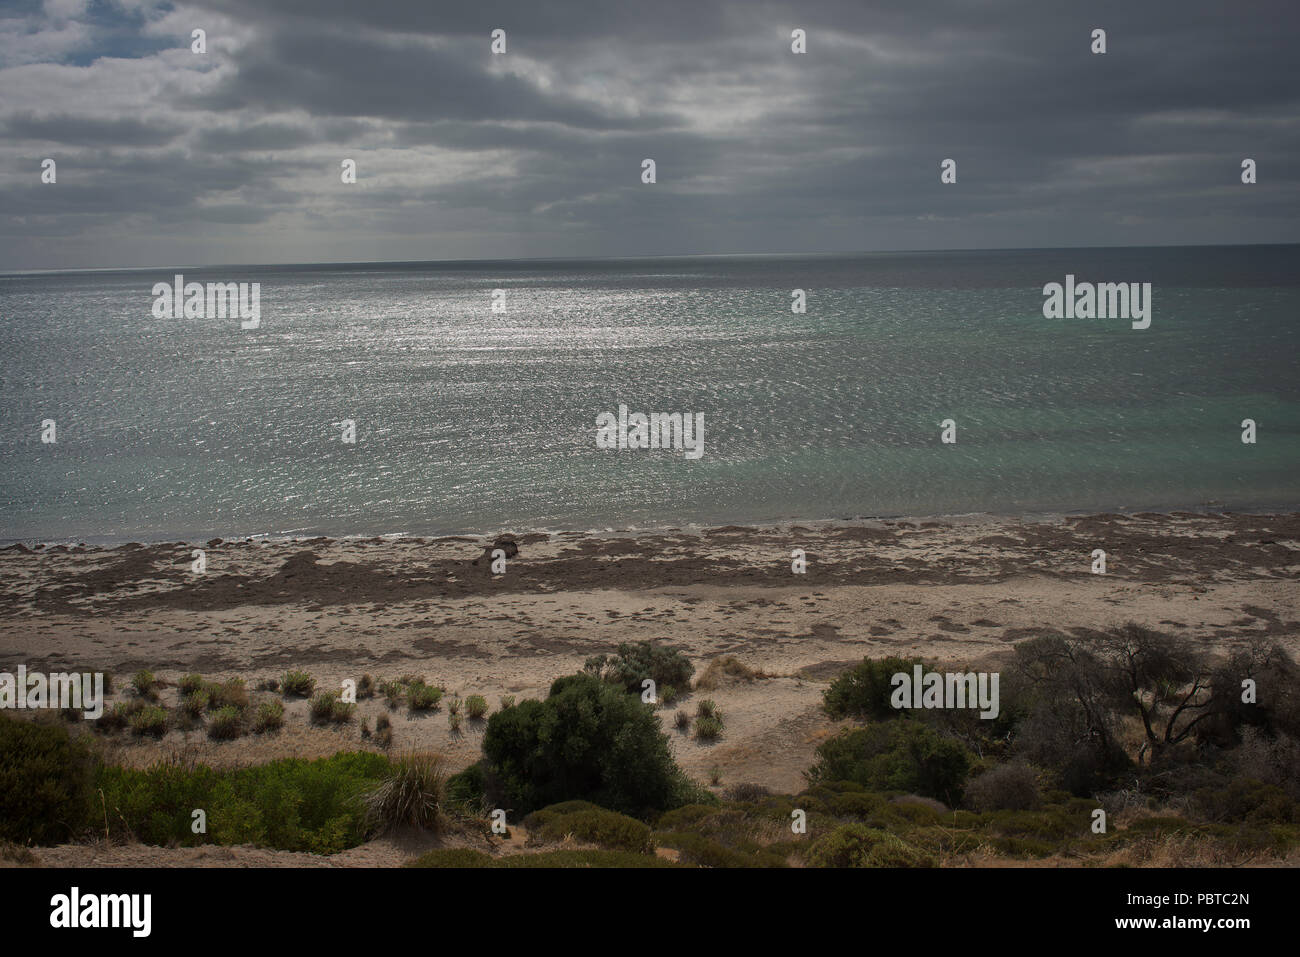 Sea view and reflections with remote bush land - Stock Image